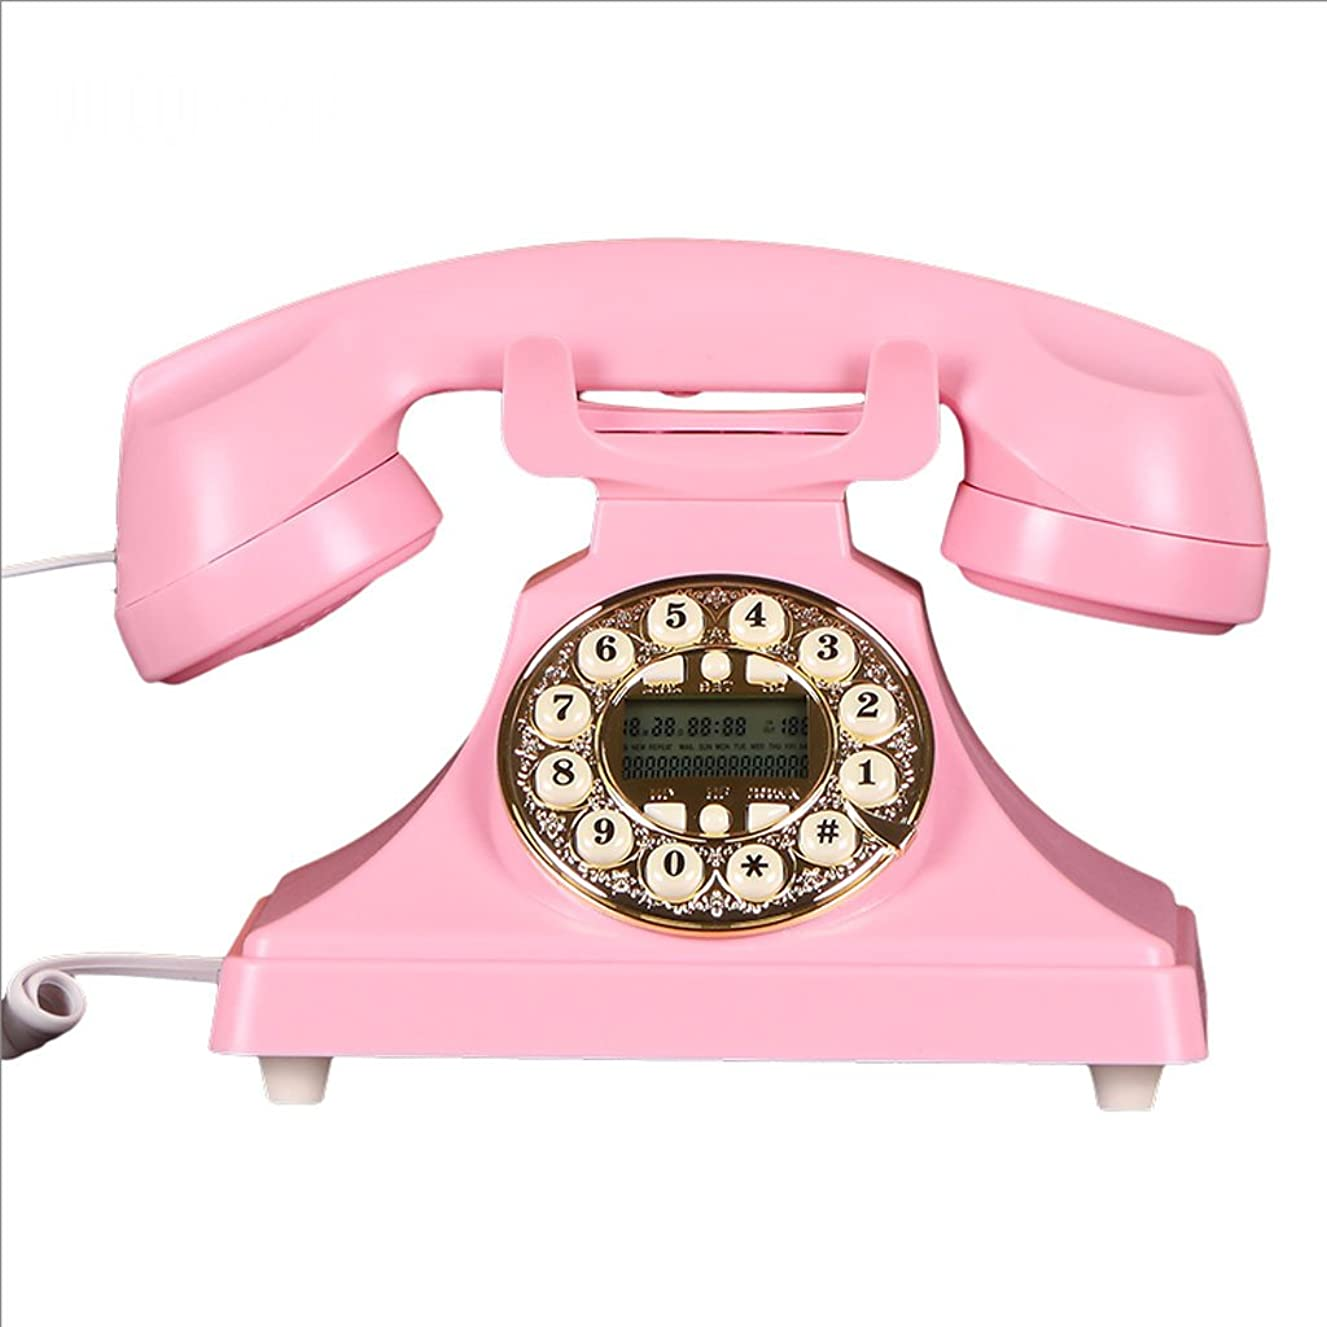 CHX Phone Antique European Style Vintage Retro Wired Household Fixed Landline Phone (Color : Pink, Size : L220MMW130MM)